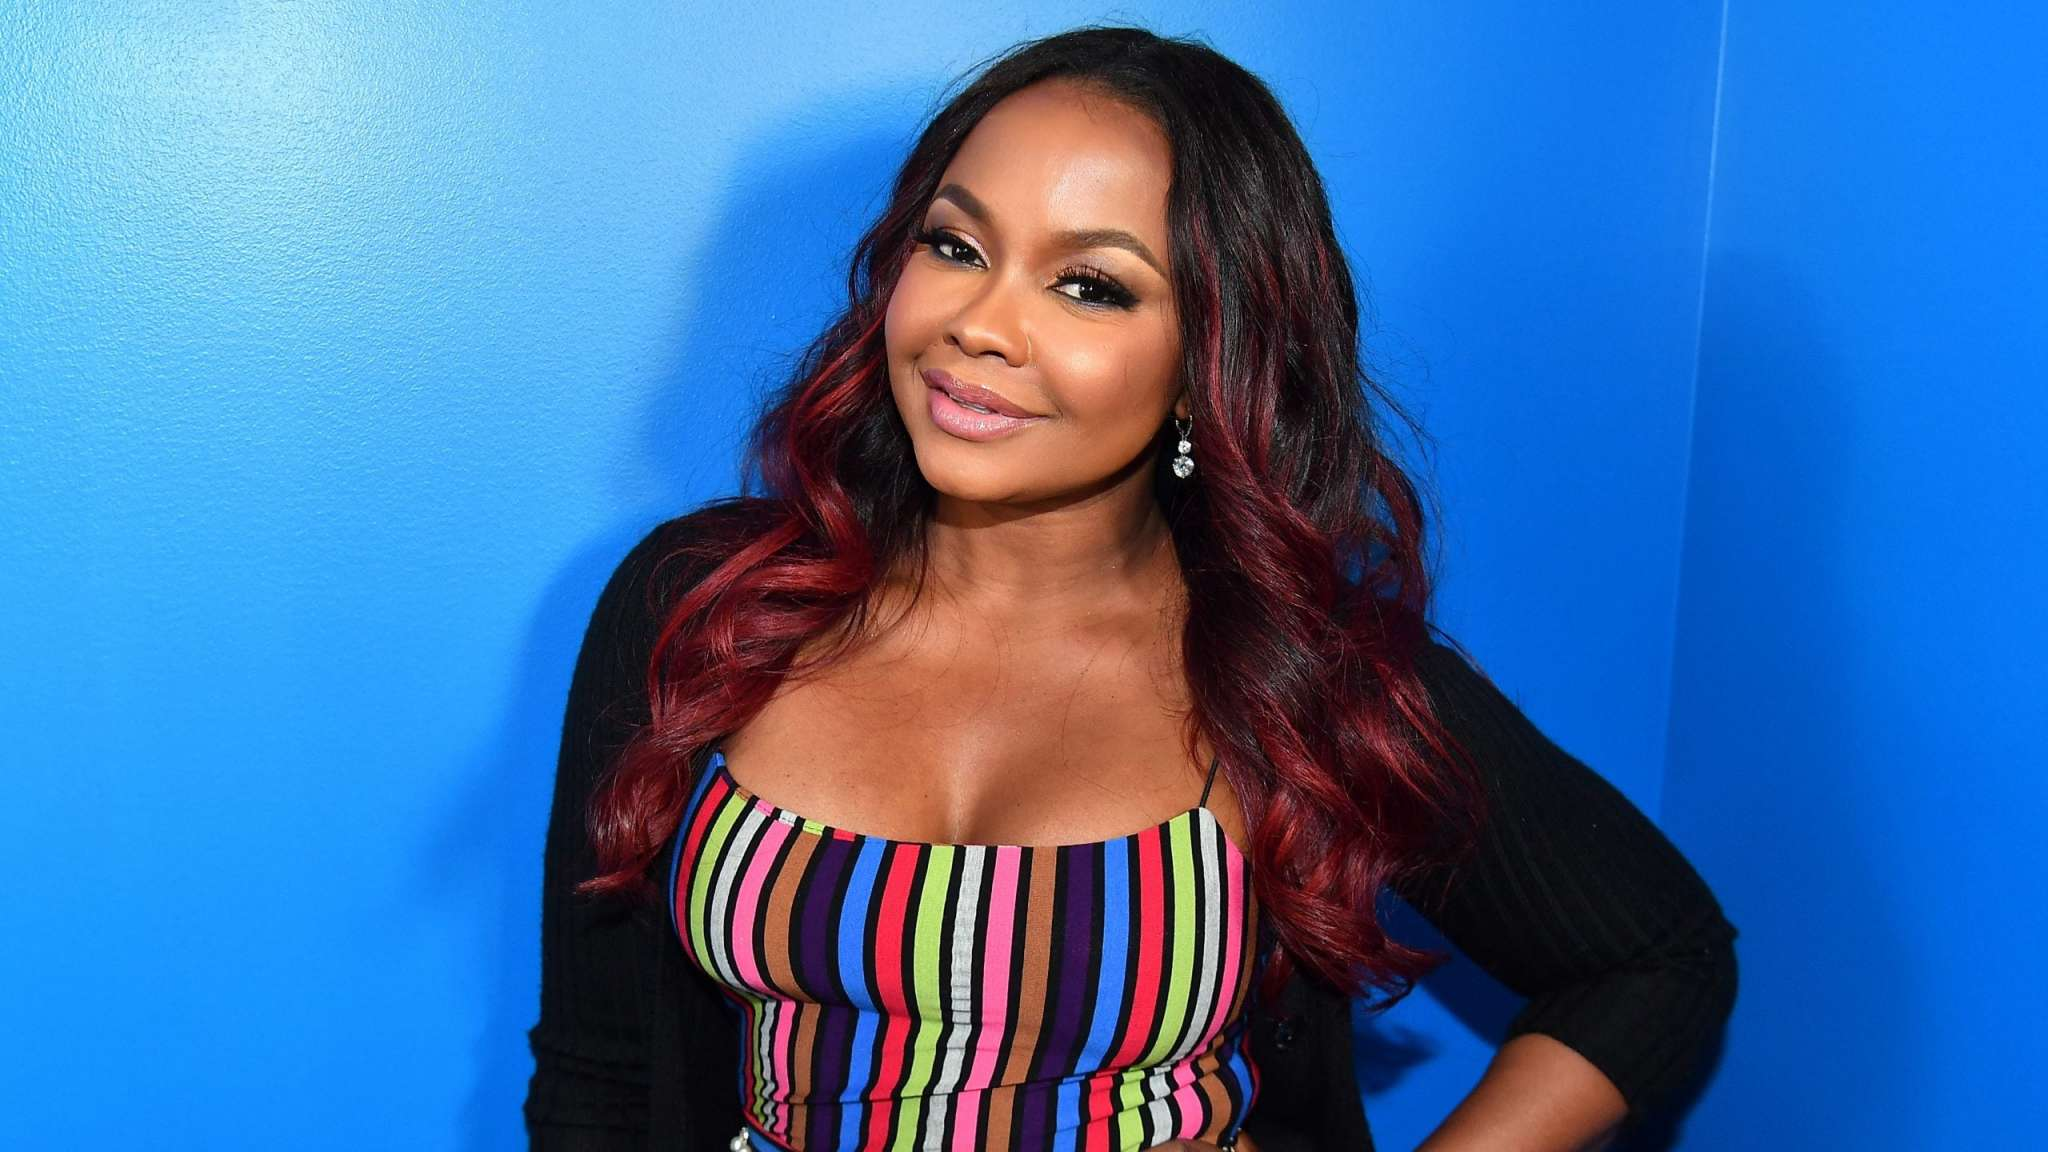 phaedra-parks-is-a-modern-day-poison-ivy-in-this-dress-check-out-the-post-that-she-shared-on-social-media